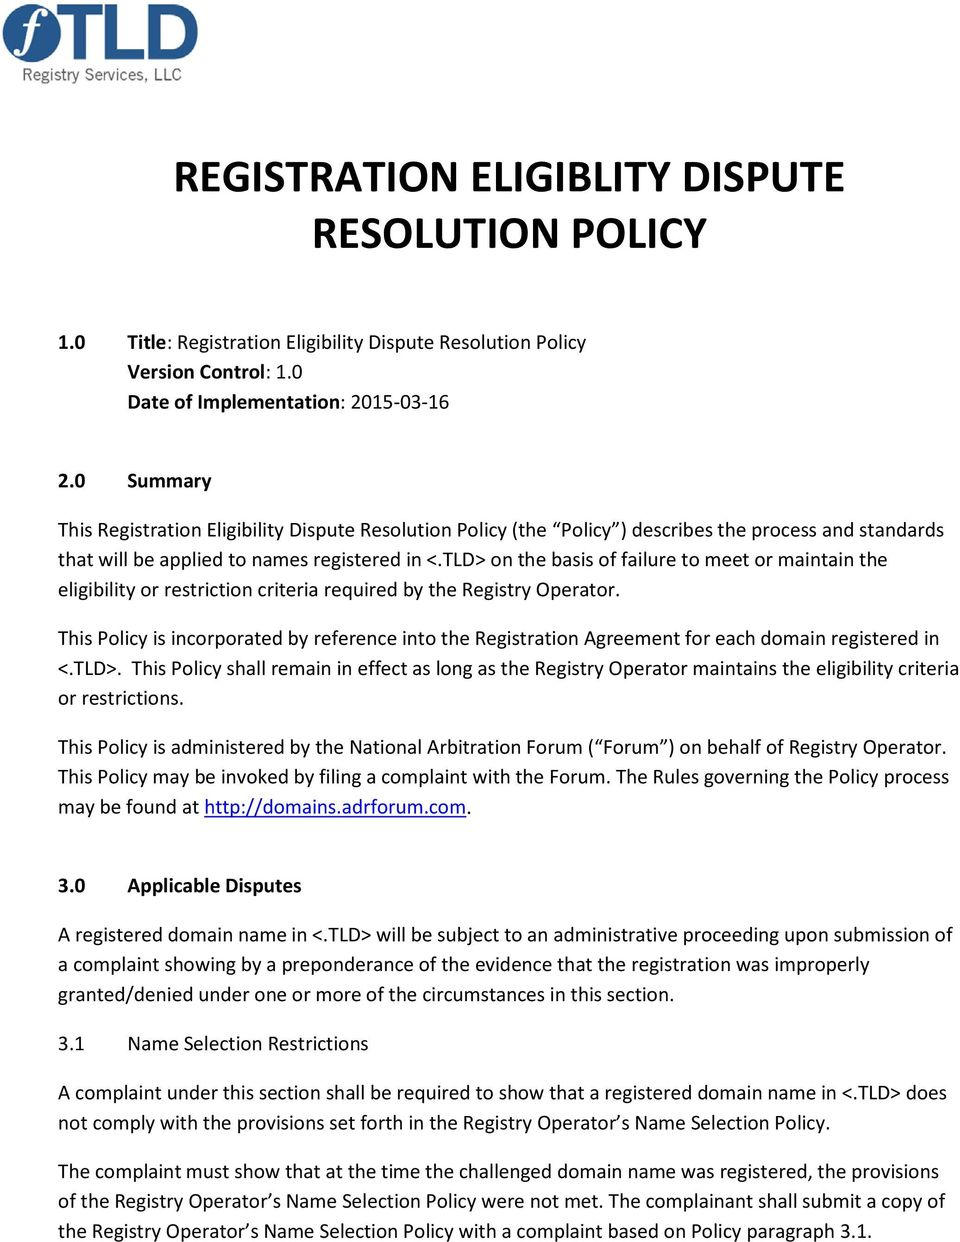 Registration Eligiblity Dispute Resolution Policy Pdf